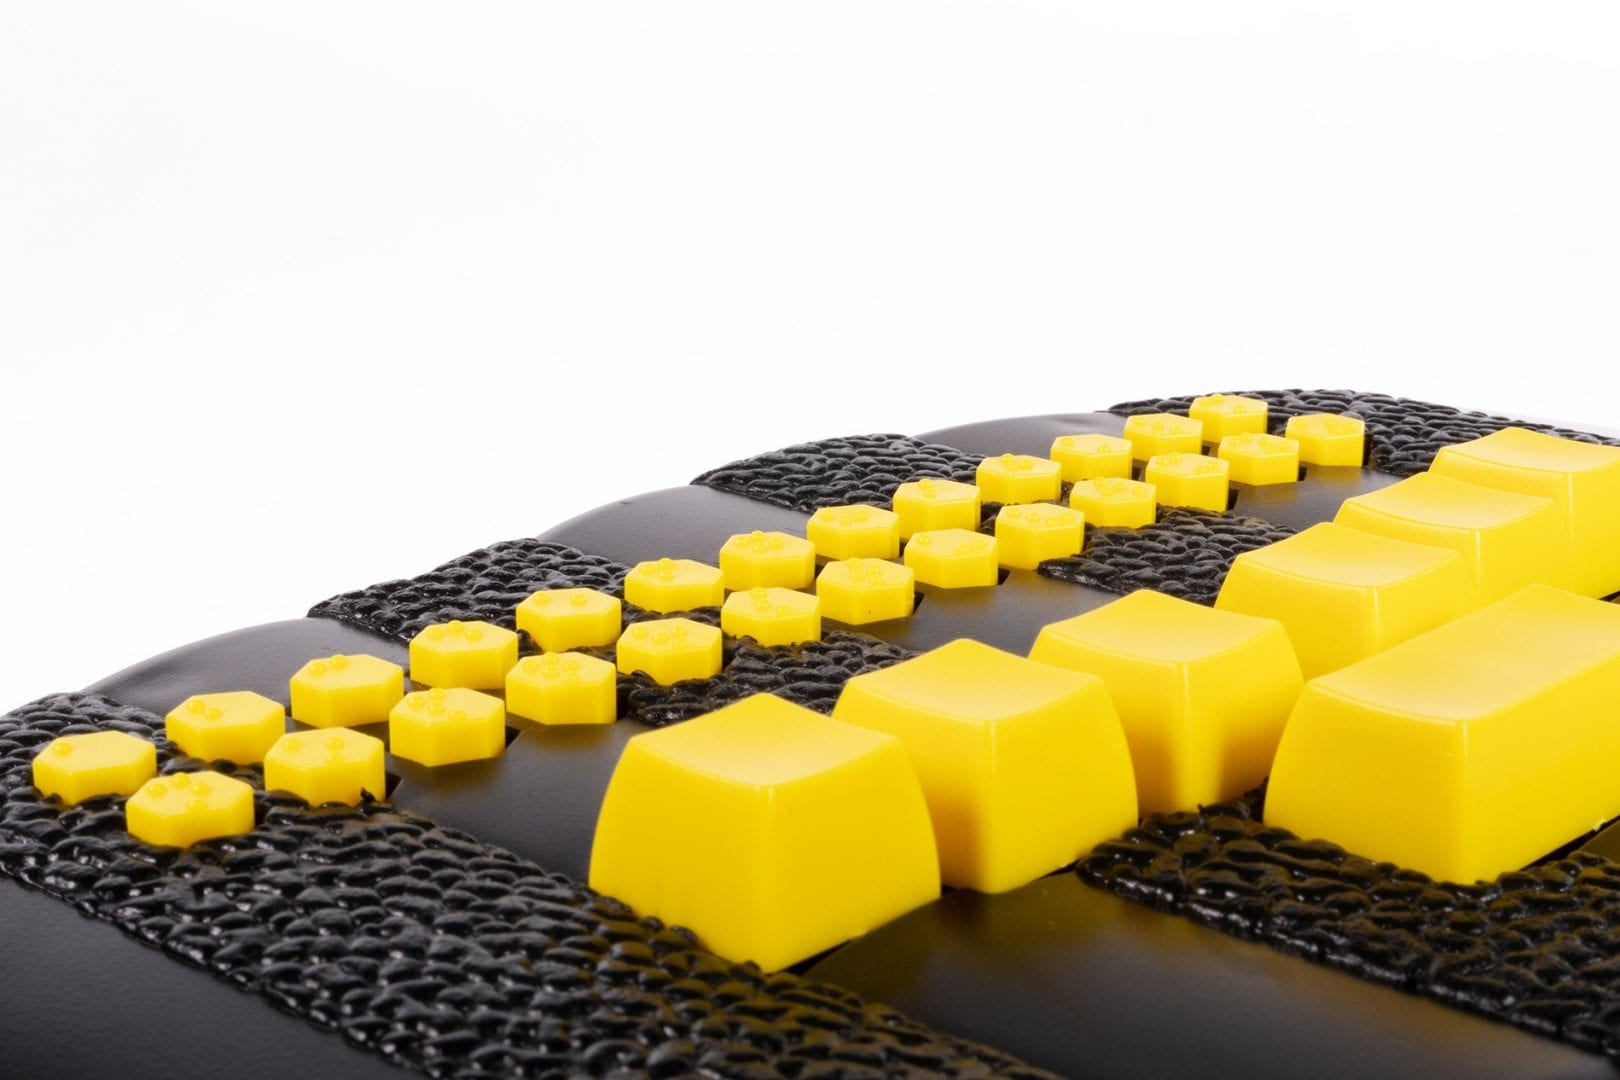 close-up photo of the Braille Buzz and its bright yellow buttons